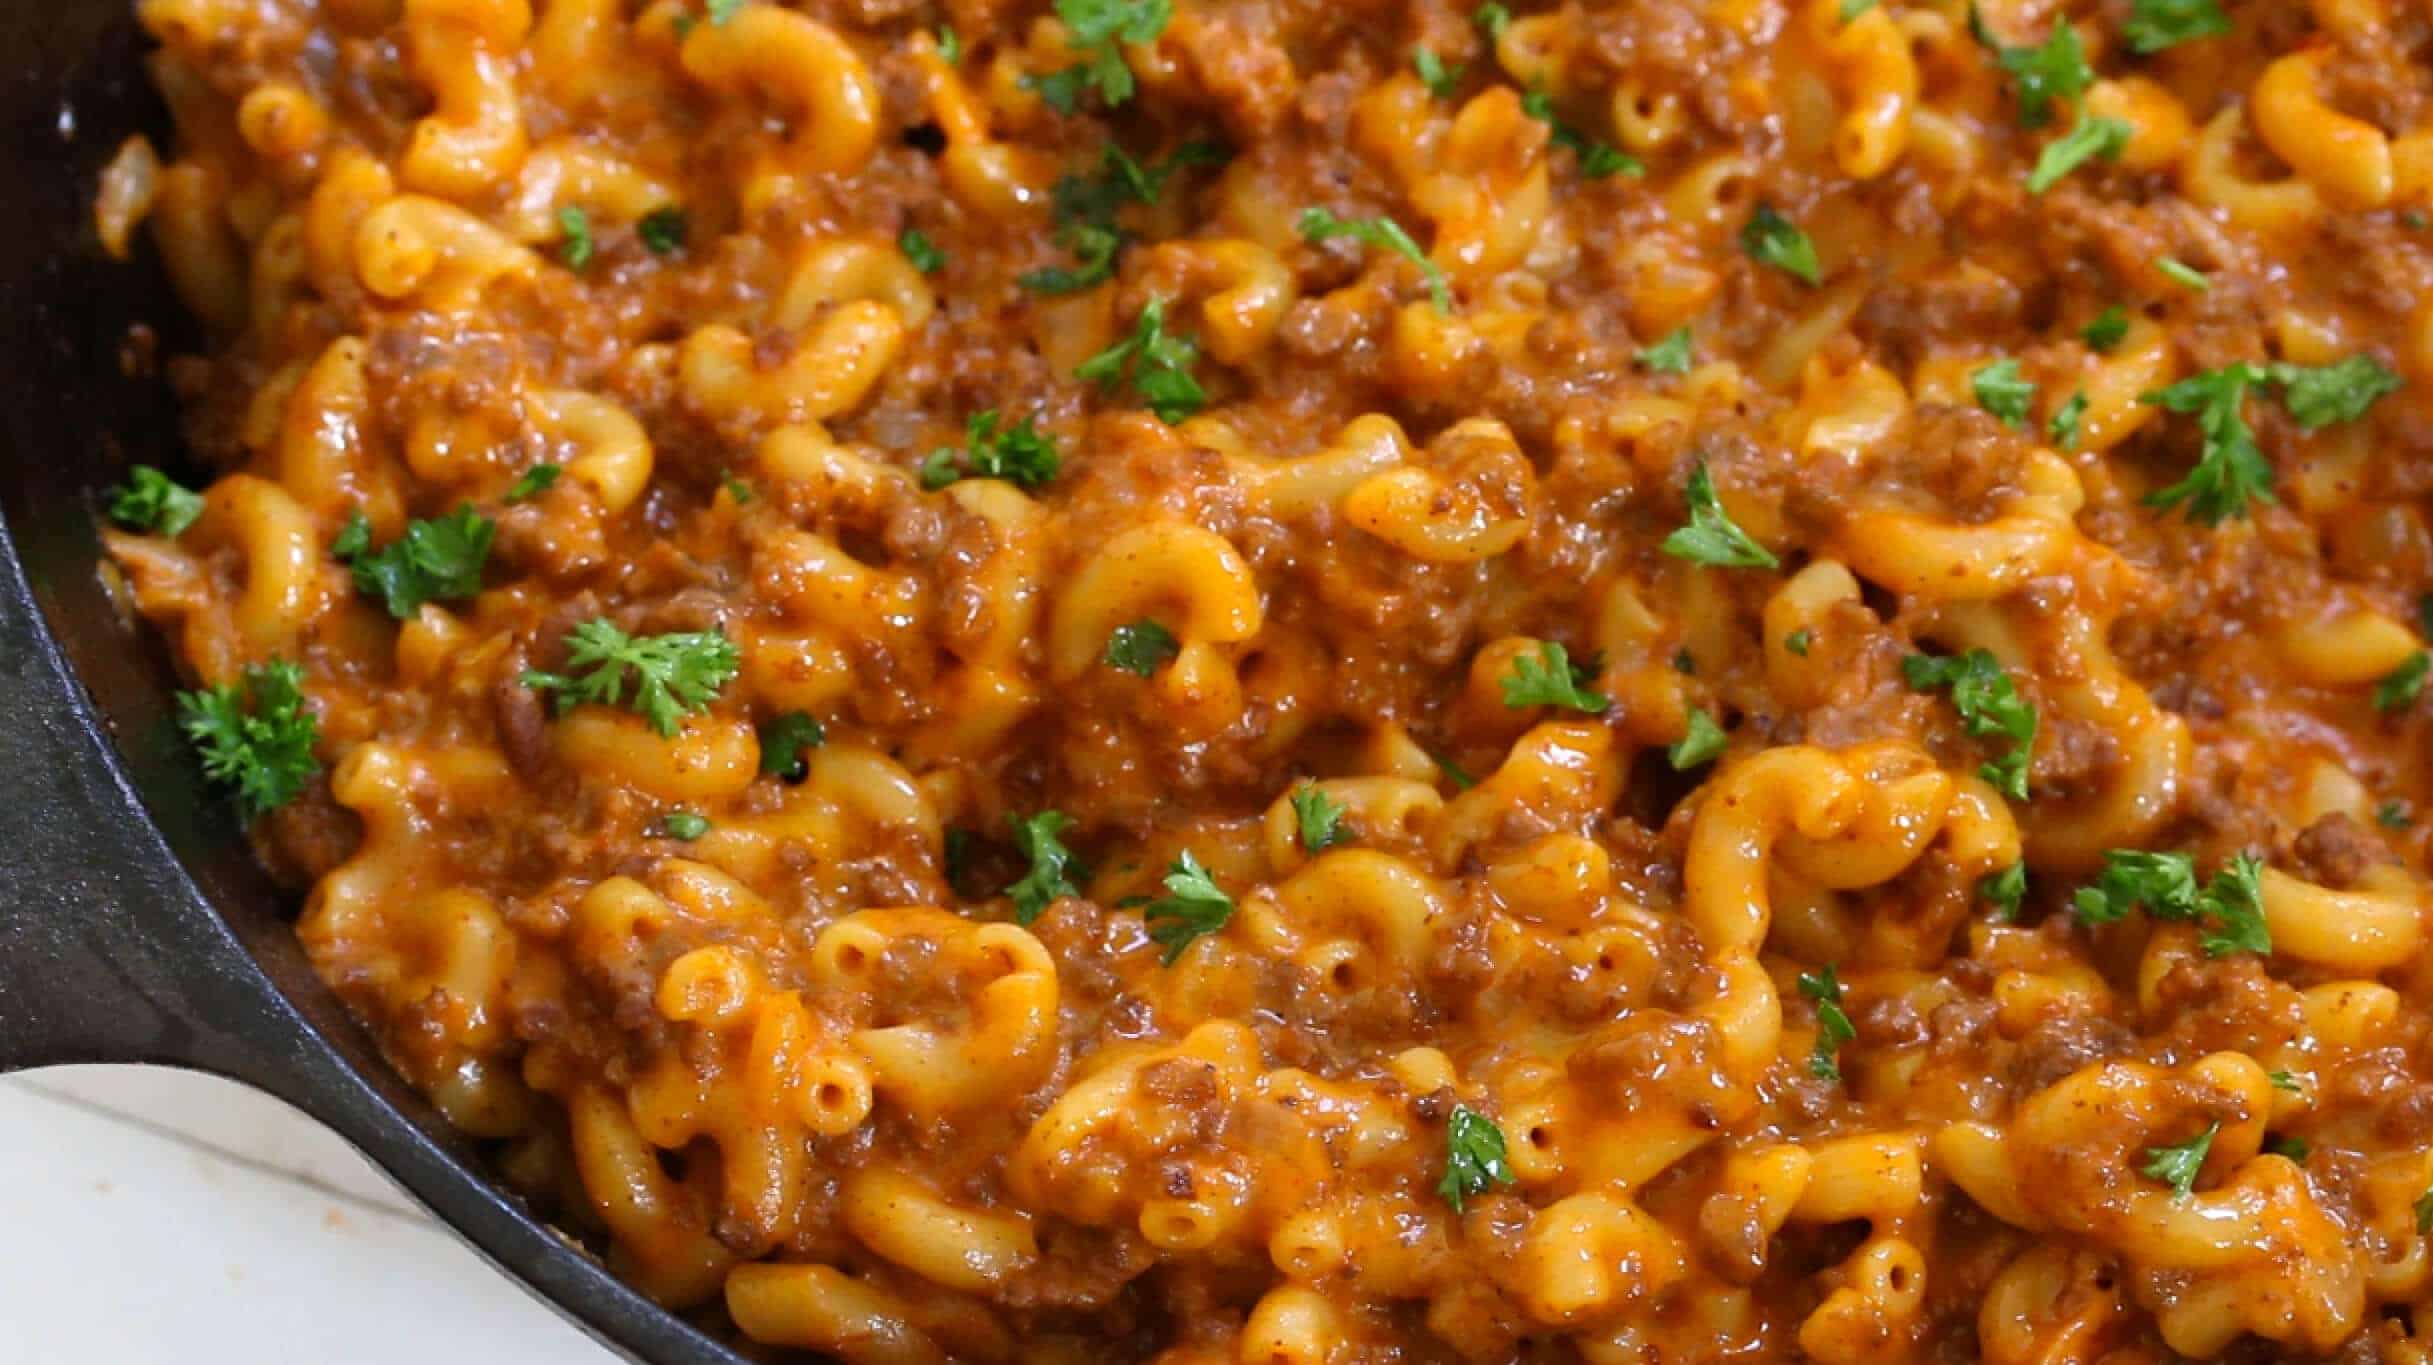 Discussion on this topic: How to Make Spicy Hamburger Helper, how-to-make-spicy-hamburger-helper/